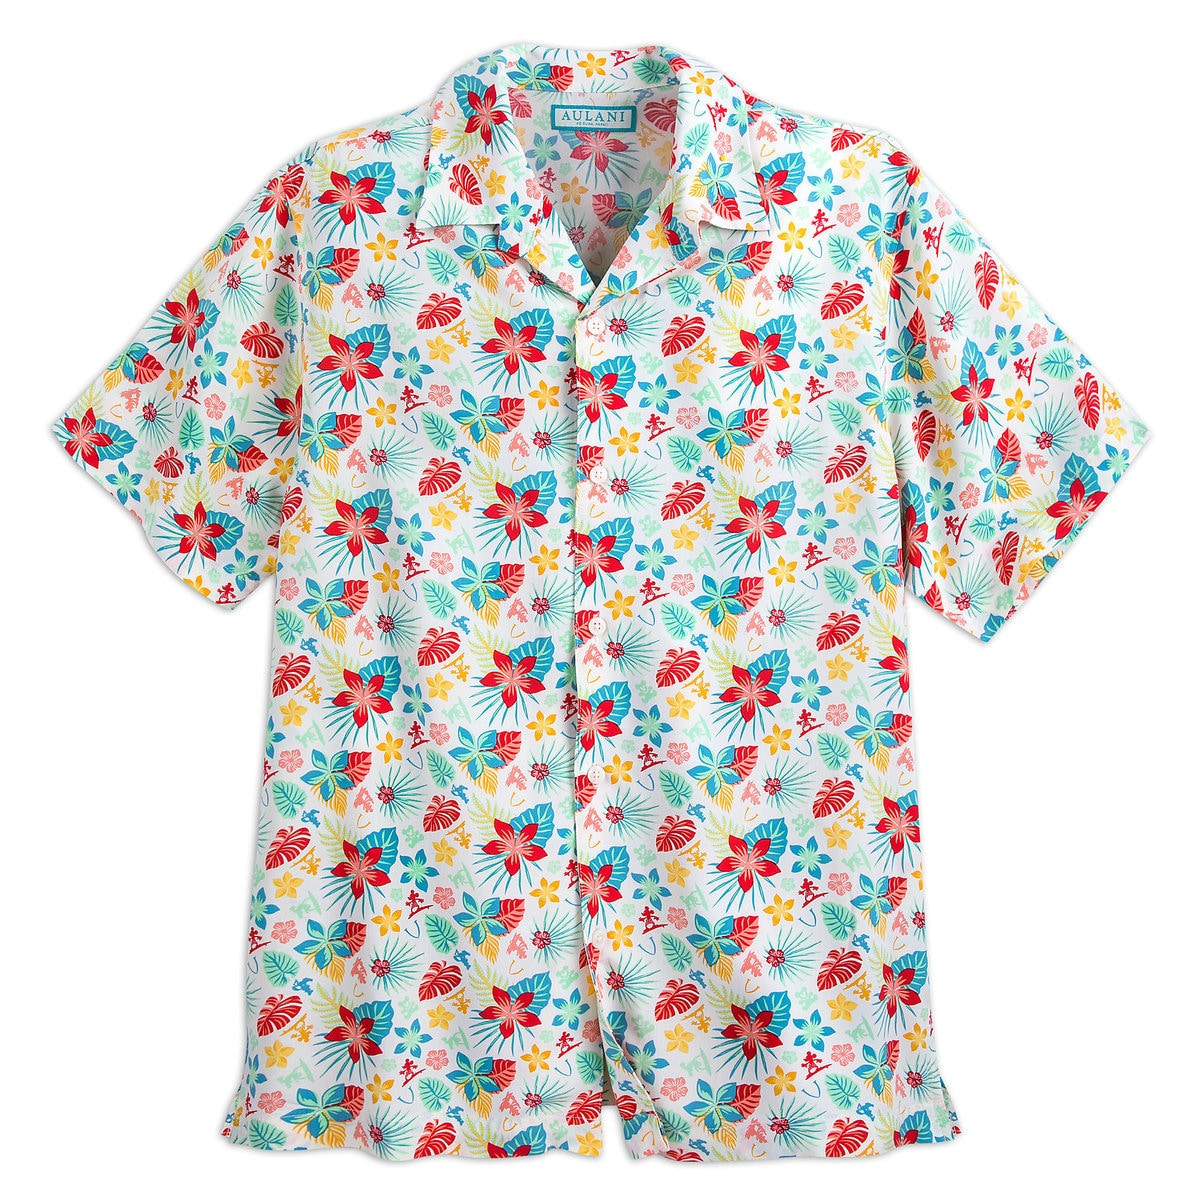 d0bcc53b Product Image of Mickey Mouse Aloha Shirt for Men - Aulani, A Disney Resort  &